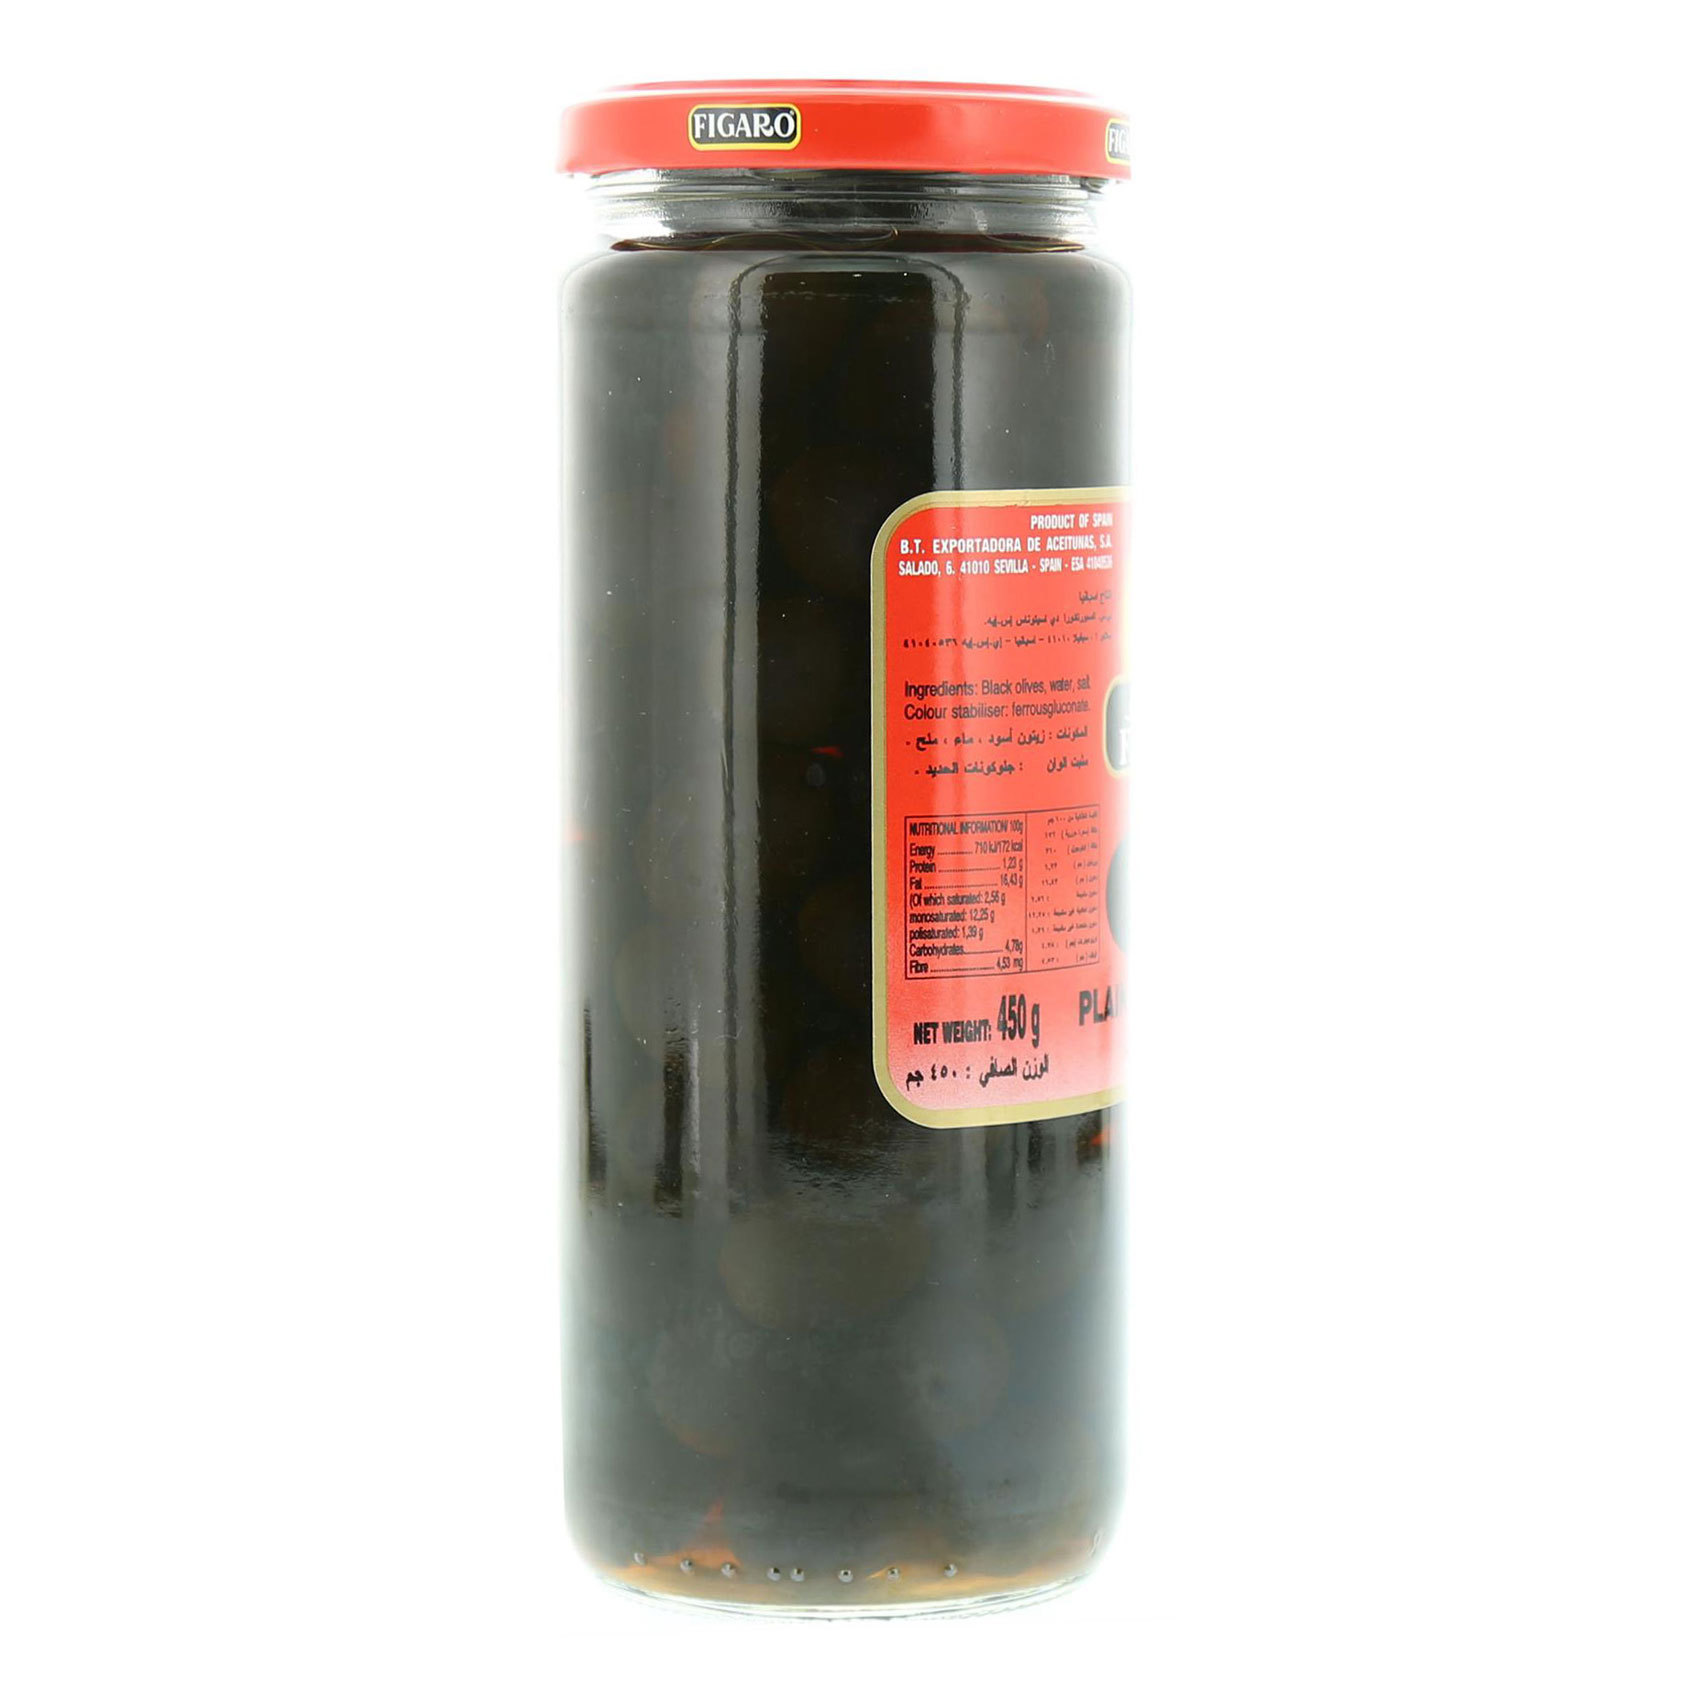 FIGARO PLAIN BLACK OLIVES 285GR